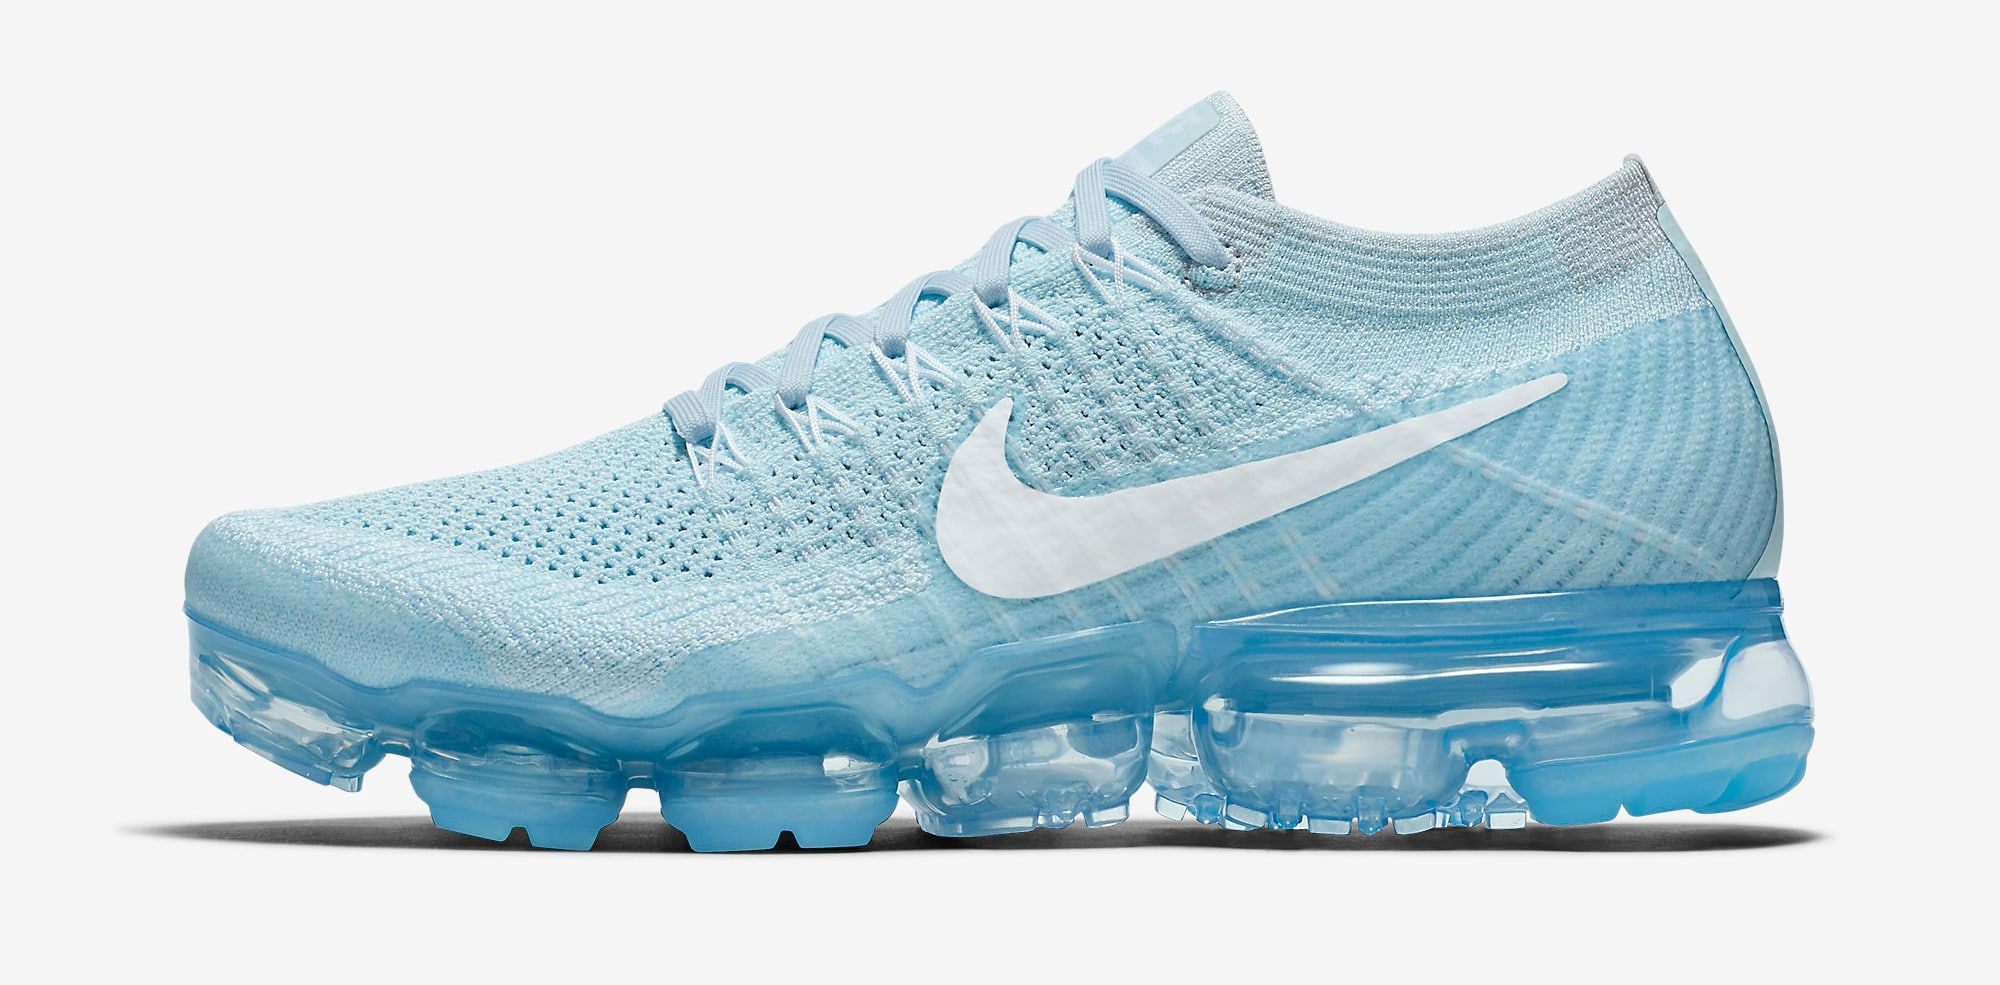 f15cd72531291 ... Women s Nike Air VaporMax Flyknit Day to Night  Glacier Blue . Glacier  Blue Nike Vapormax 849557-404 Profile